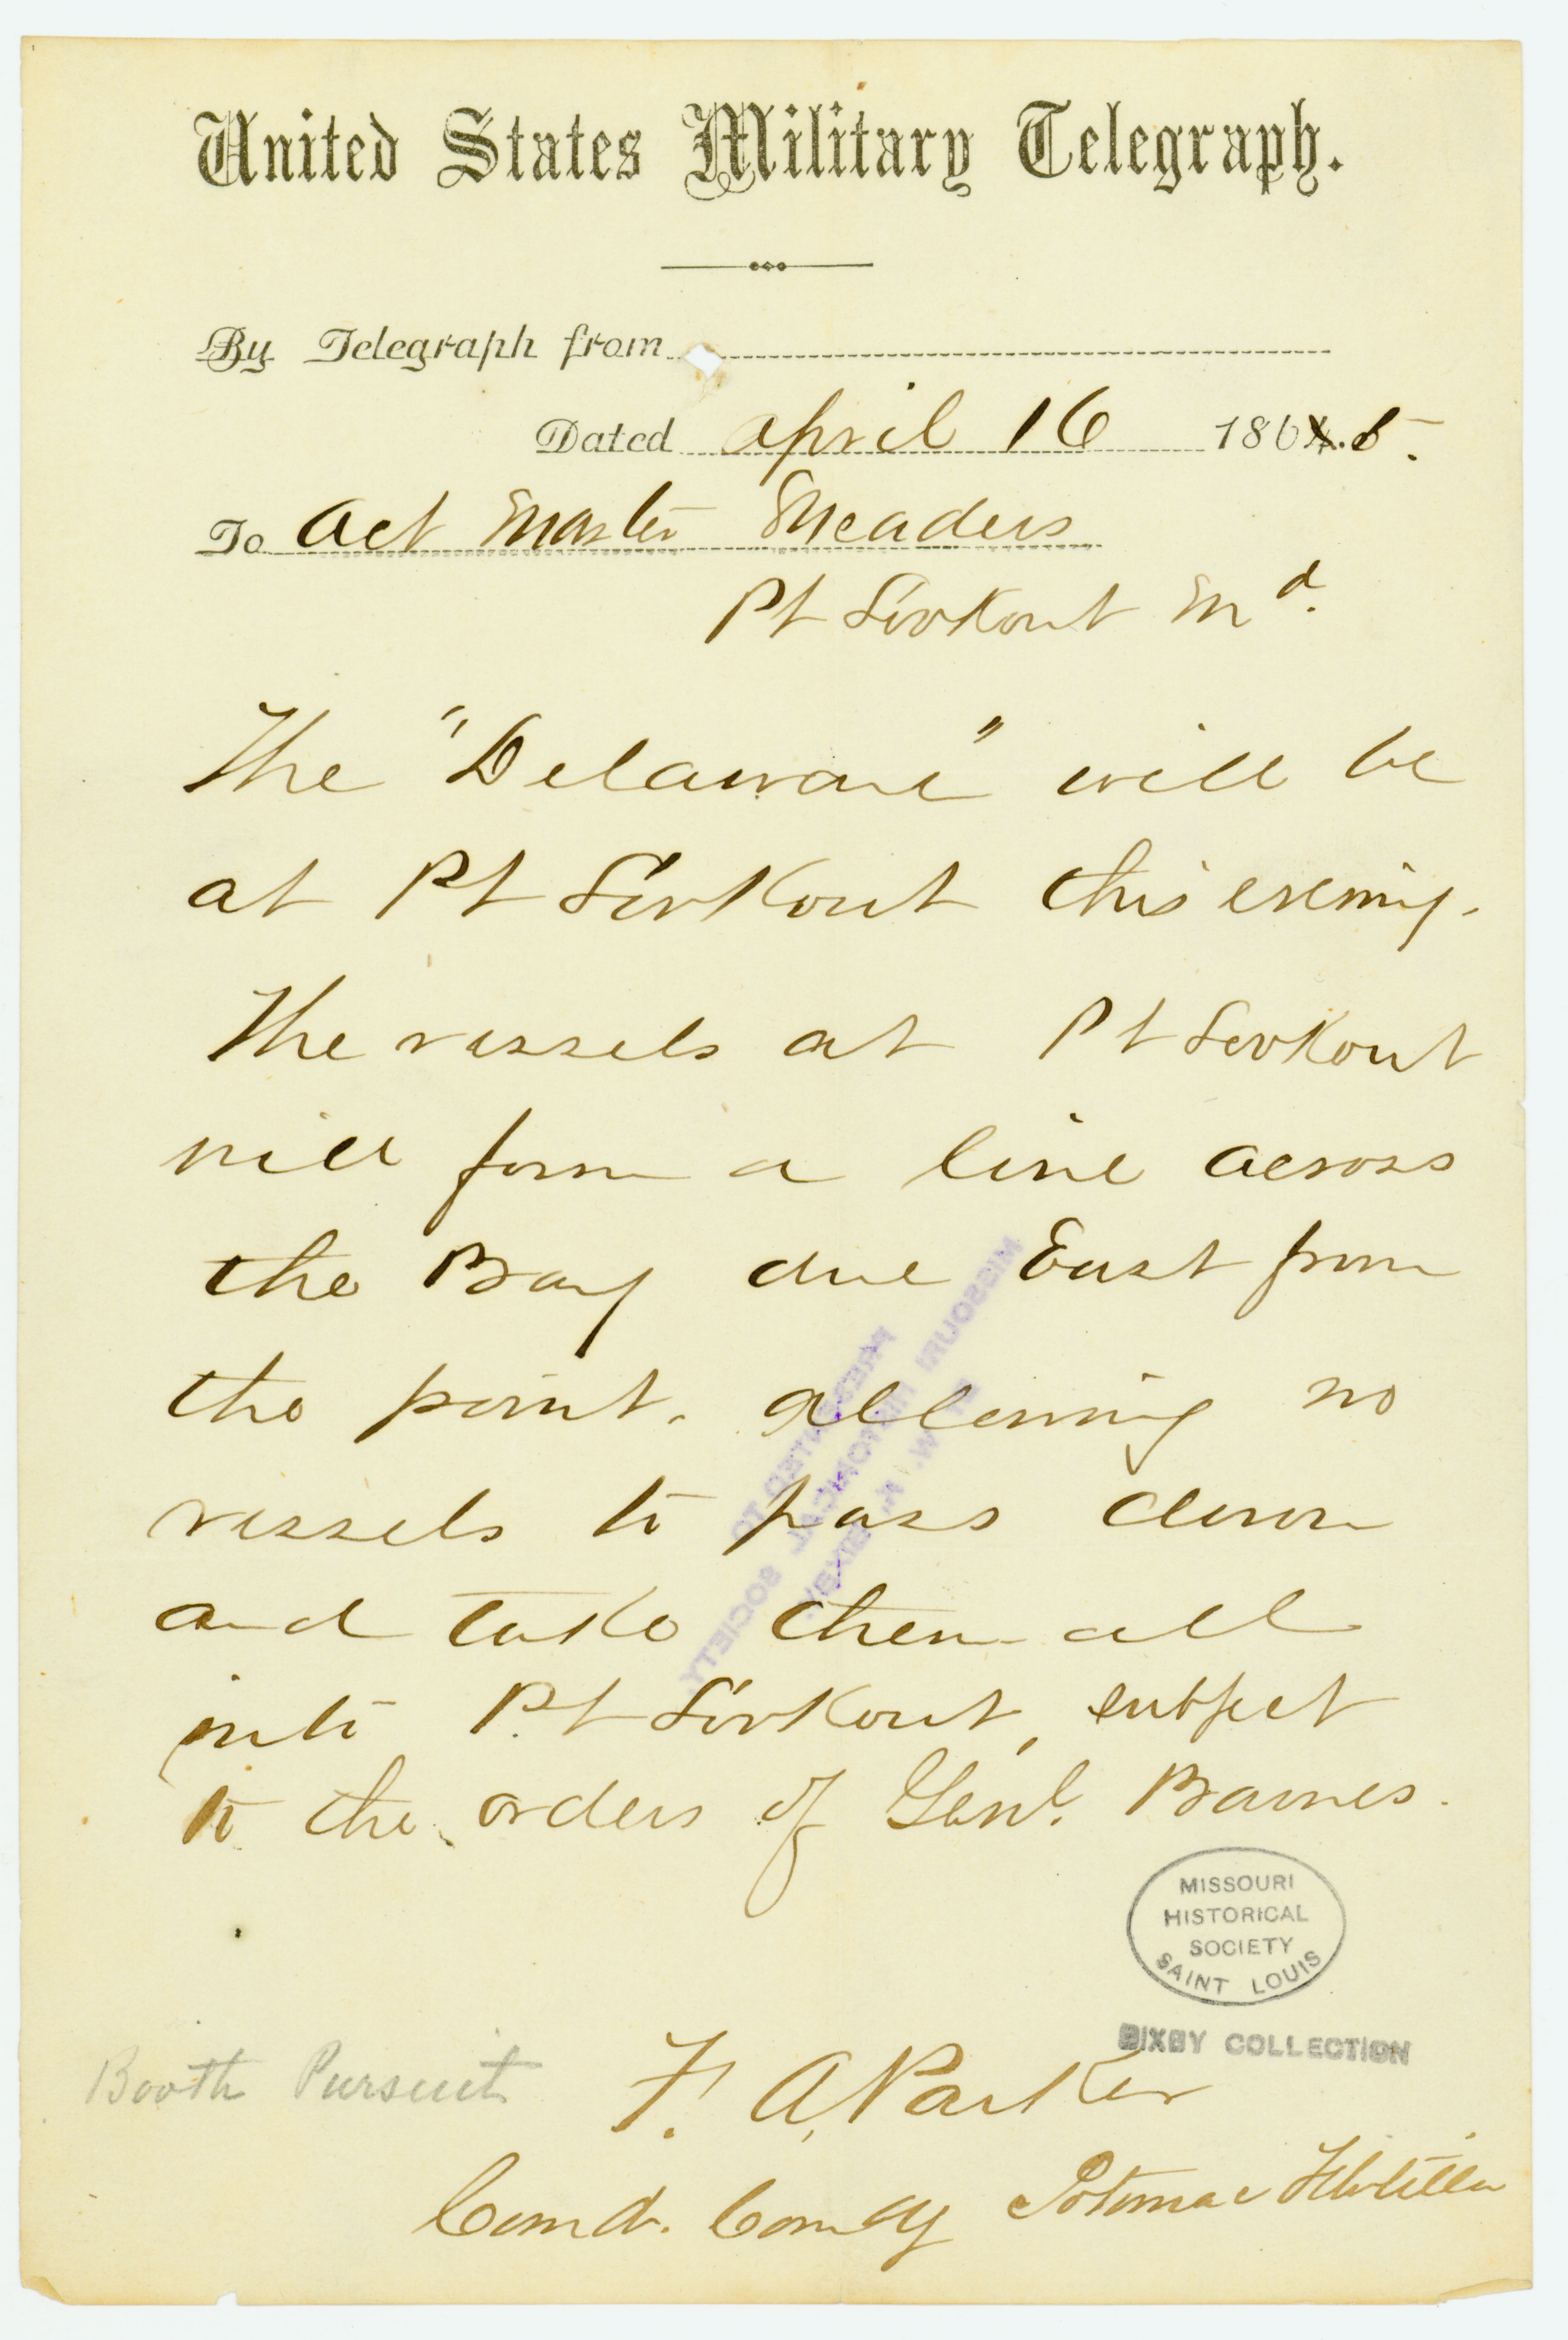 United States Military Telegraph of F. A. Parker, Comd. Comdg. Potomac Flotilla, to Act. Master Meaders, Pt. Lookout, Md., April 16, 1865